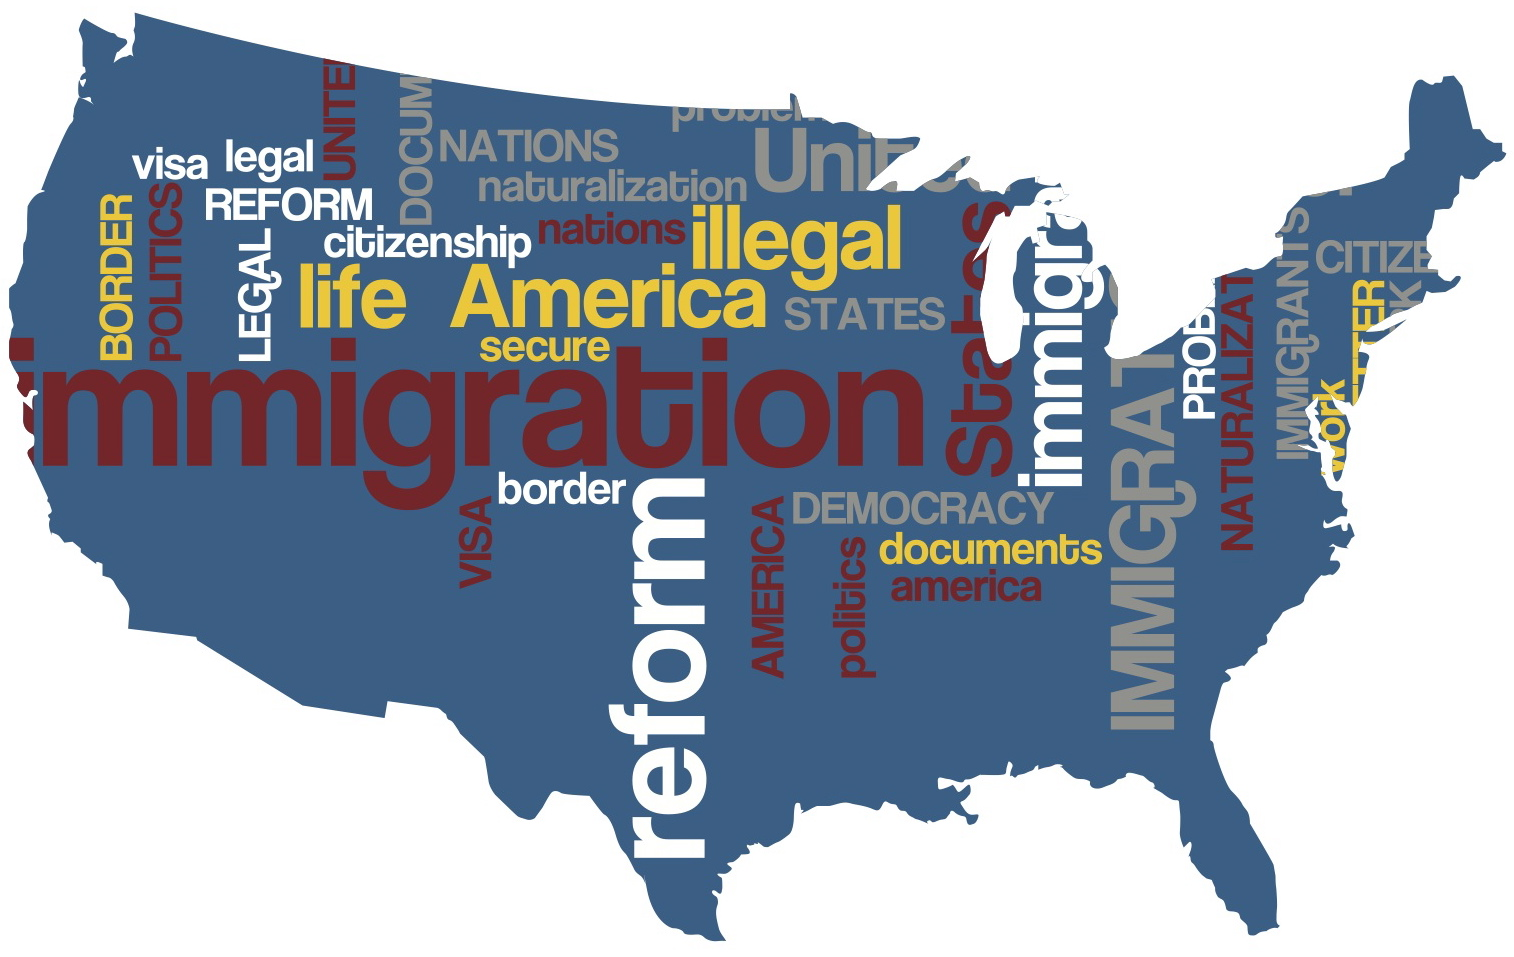 an analysis of the american democracy and the united states citizenship principle The 100 civics (history and government) questions and answers for the naturalization principles of american democracy said that the united states is.